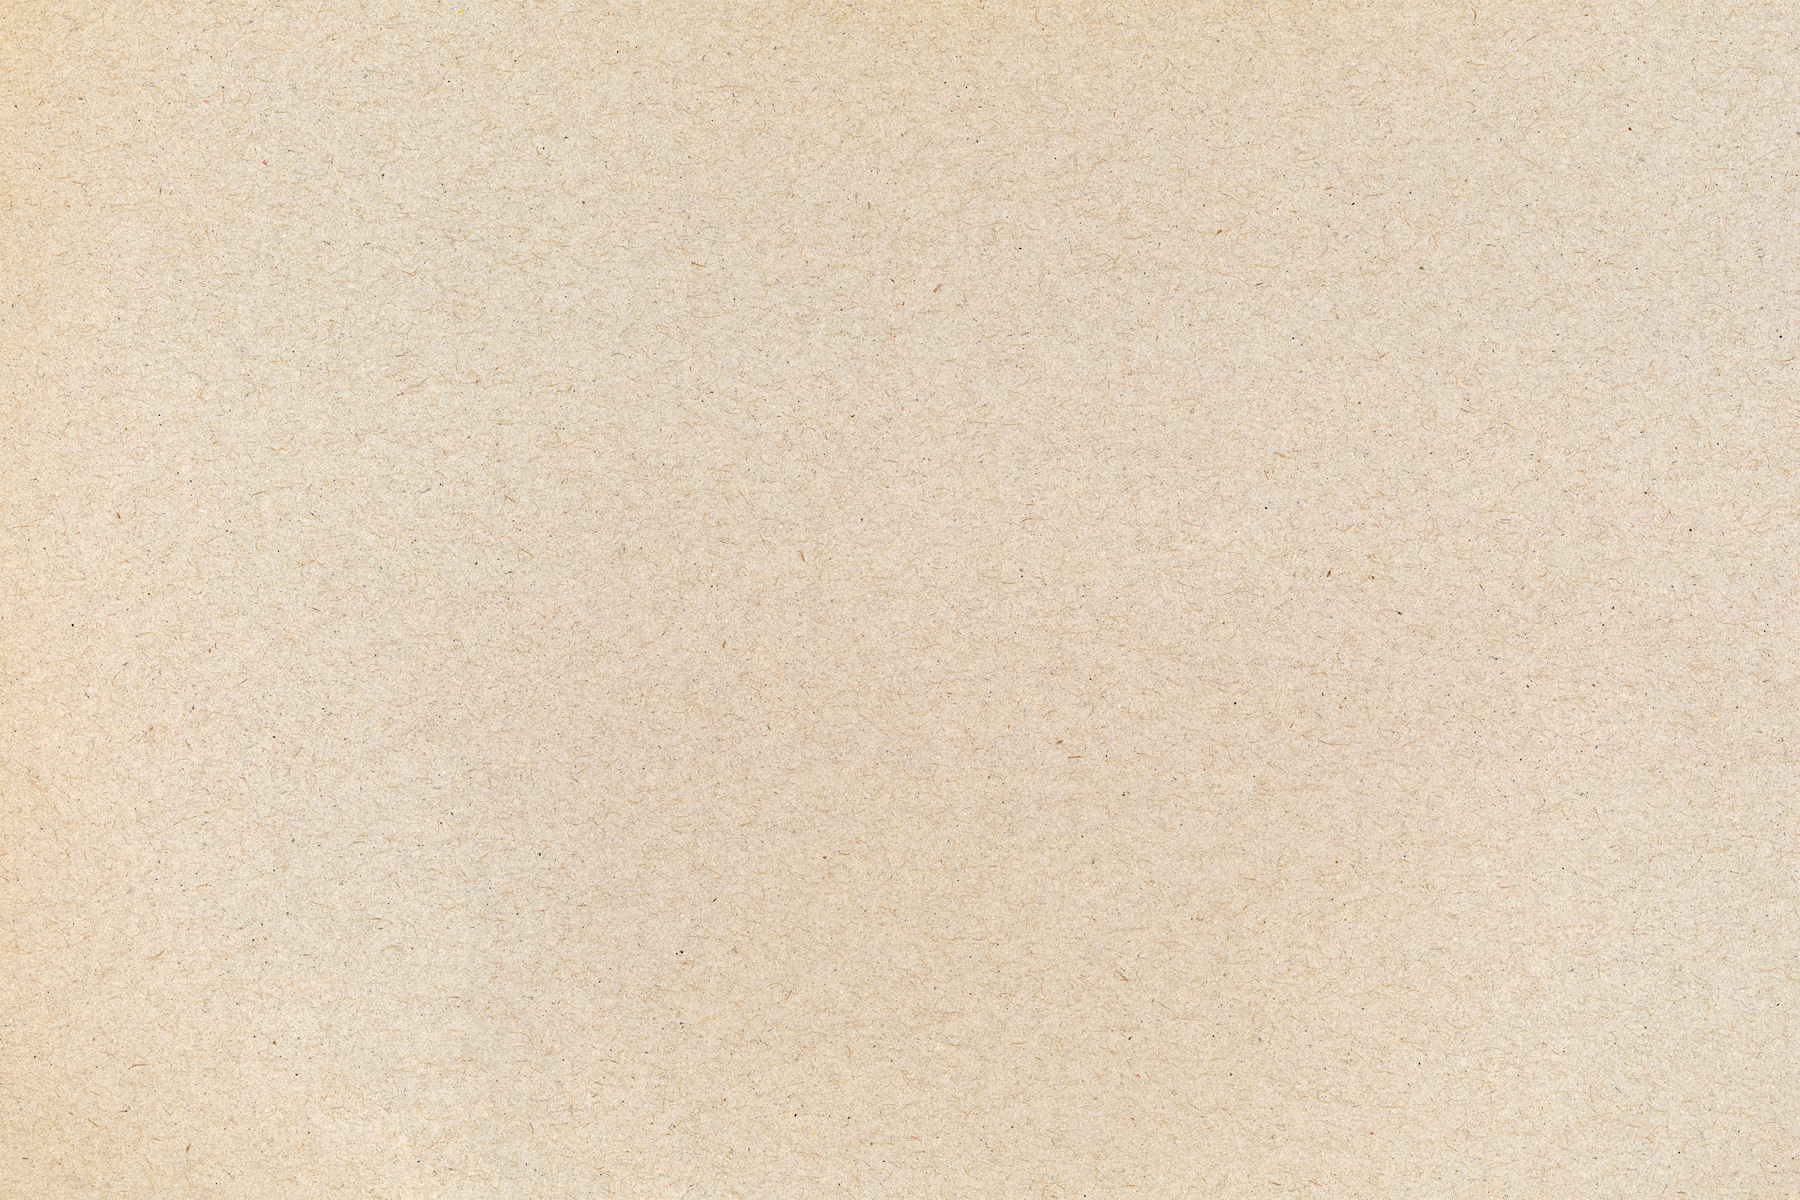 Cardboard Paper Texture, Backdrop, Stationary, Scanned, Scrapbook, HQ Photo